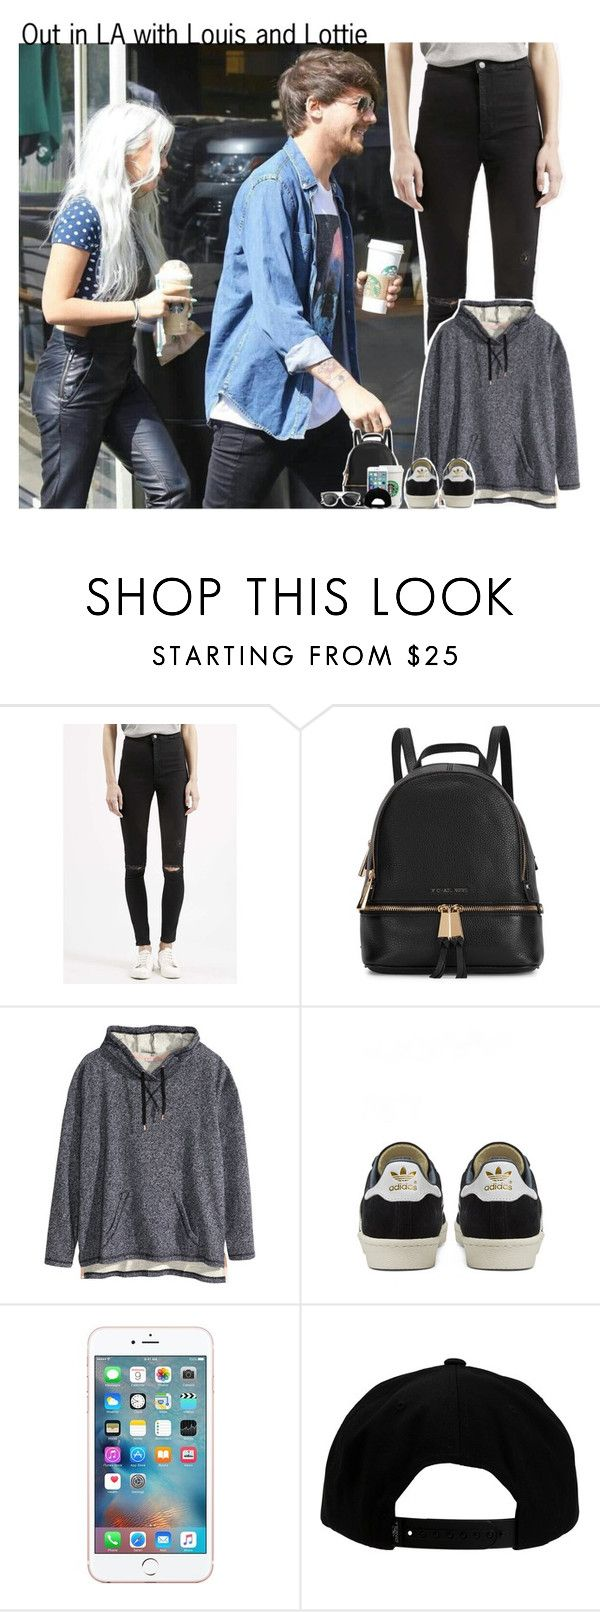 """#1628"" by sofi-camachod ❤ liked on Polyvore featuring Topshop, Michael Kors, H&M, adidas, O'Neill, Chicnova Fashion, OneDirection, louistomlinson, onedirectionoutfits and LottieTomlinson"